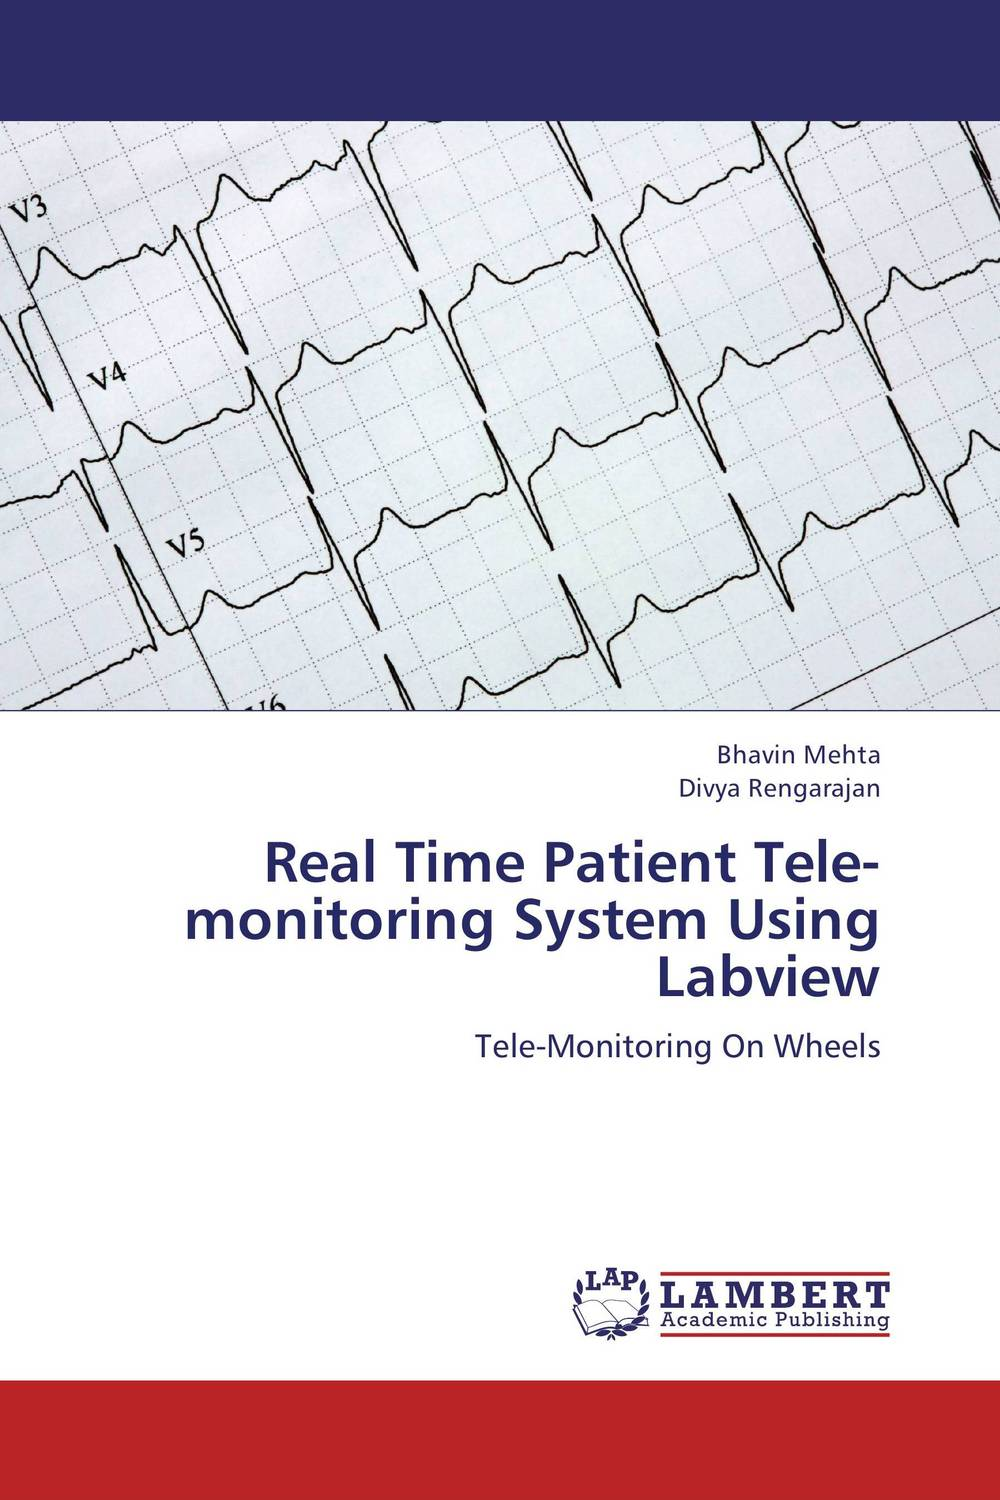 Real Time Patient Tele-monitoring System Using Labview kenneth rosen d investing in income properties the big six formula for achieving wealth in real estate